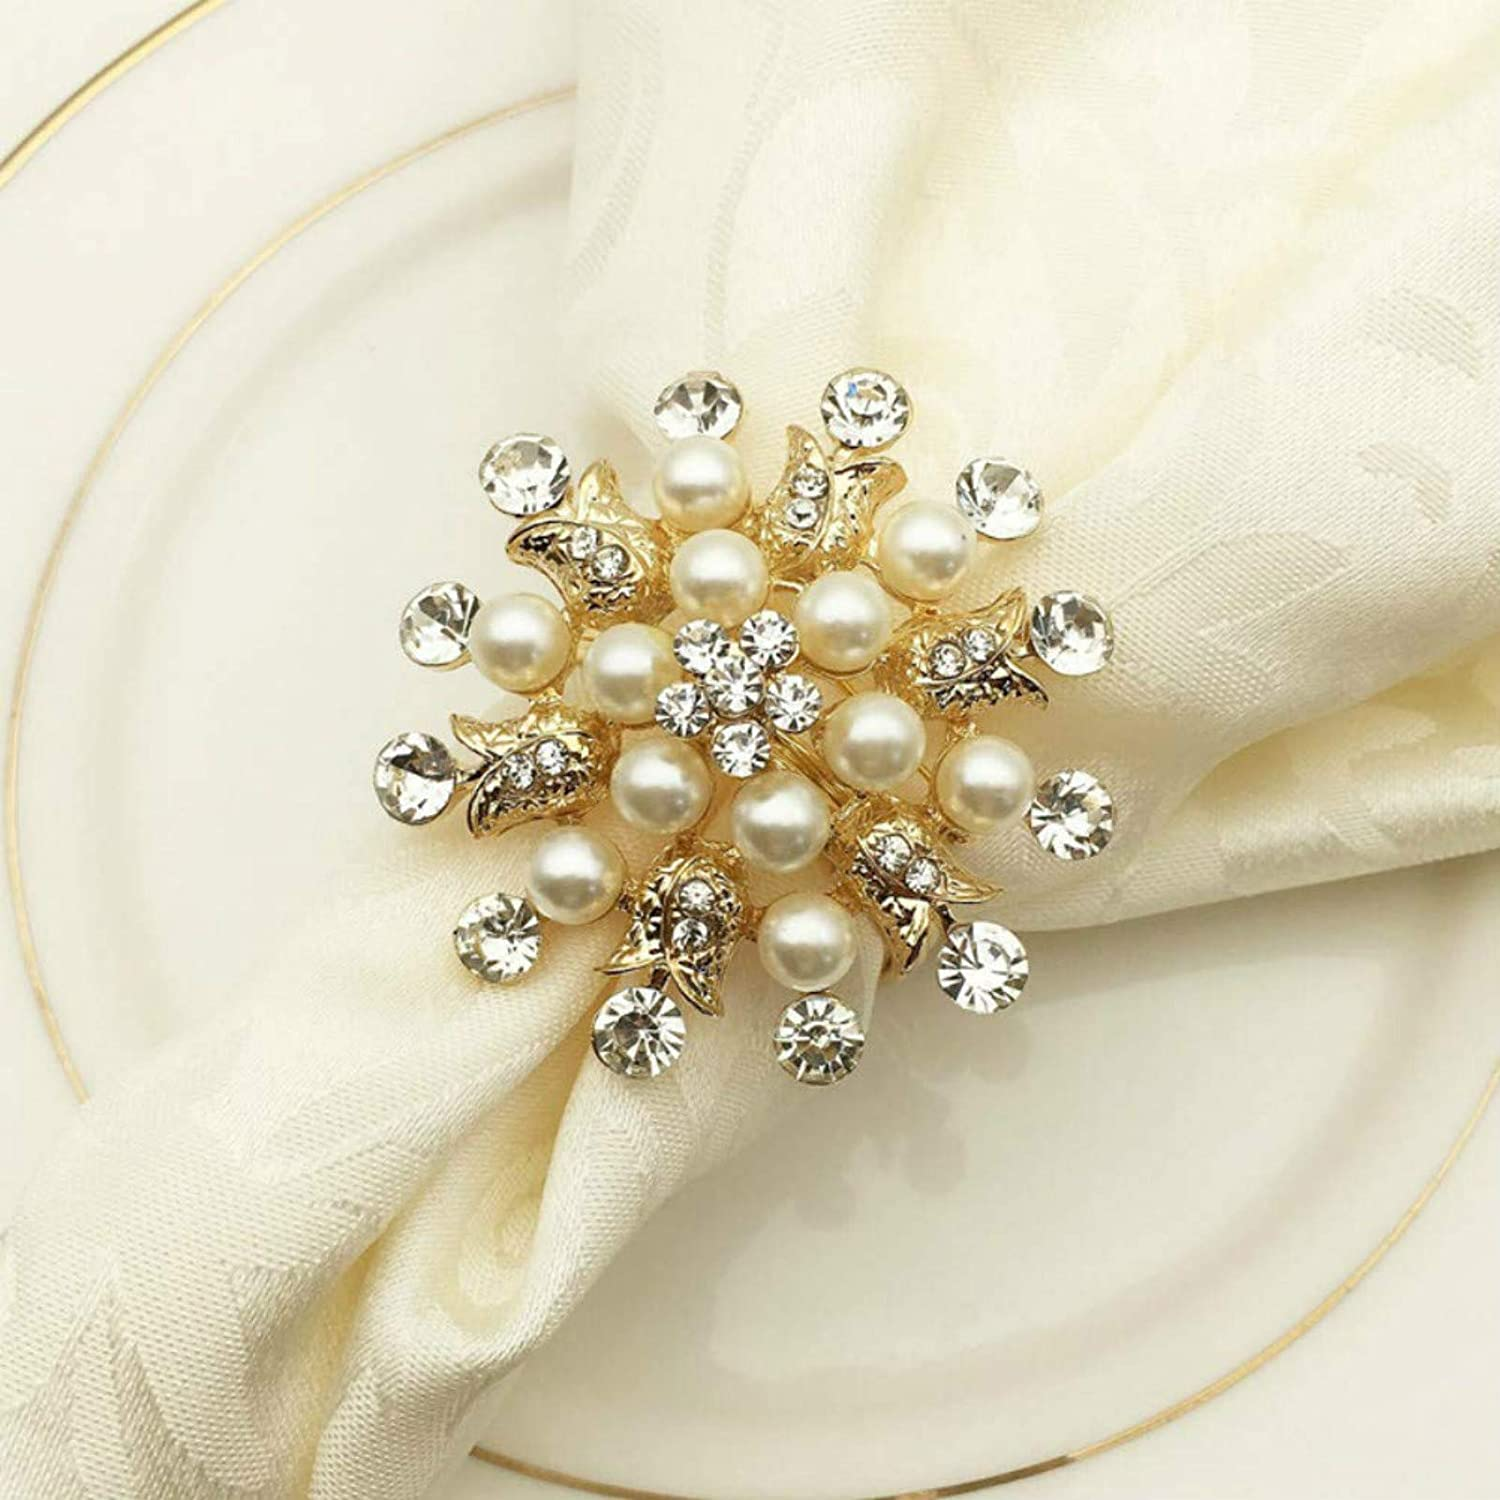 Pearl Flower Hollow Out Napkin Rings Wedding Dinner Table Decor